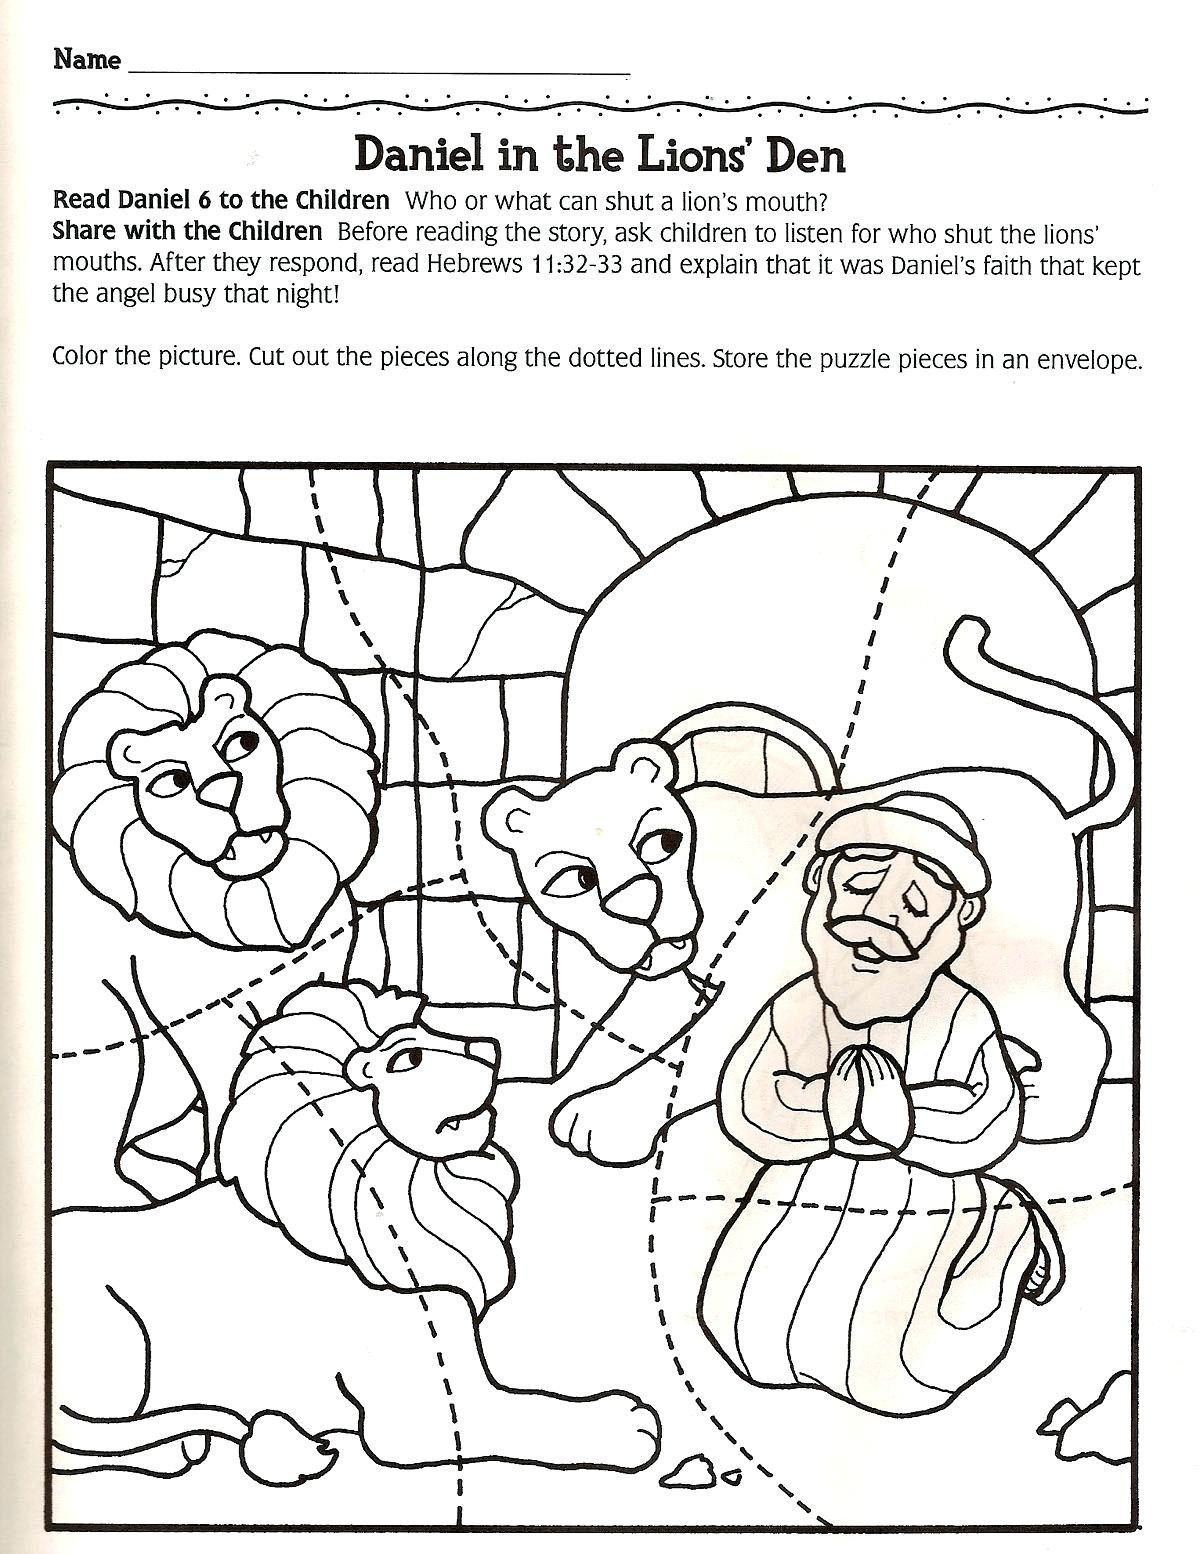 Daniel And The Lions Den Coloring Page Unlock Daniel In The Lion S Den Coloring Page Collection Of Free Birijus Com Daniel And The Lions Bible Crafts Bible Crafts For Kids